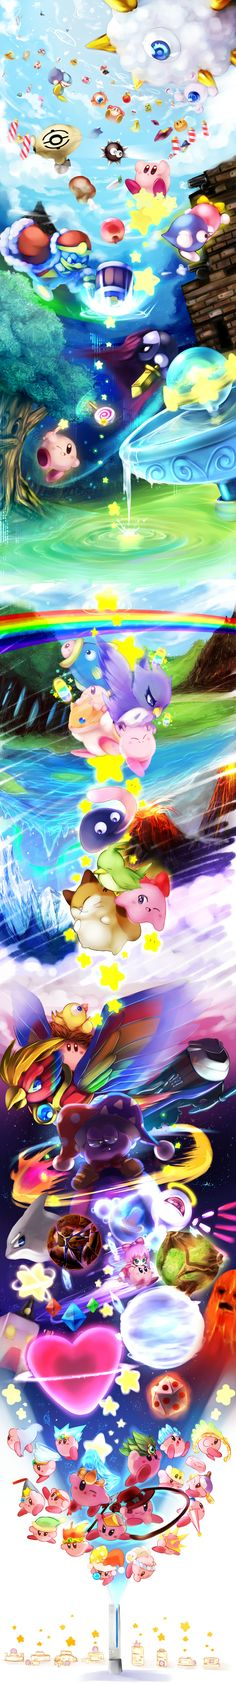 Just a cute tribute to a cute character...Kirby, my childhood character (along with Yoshi). :)